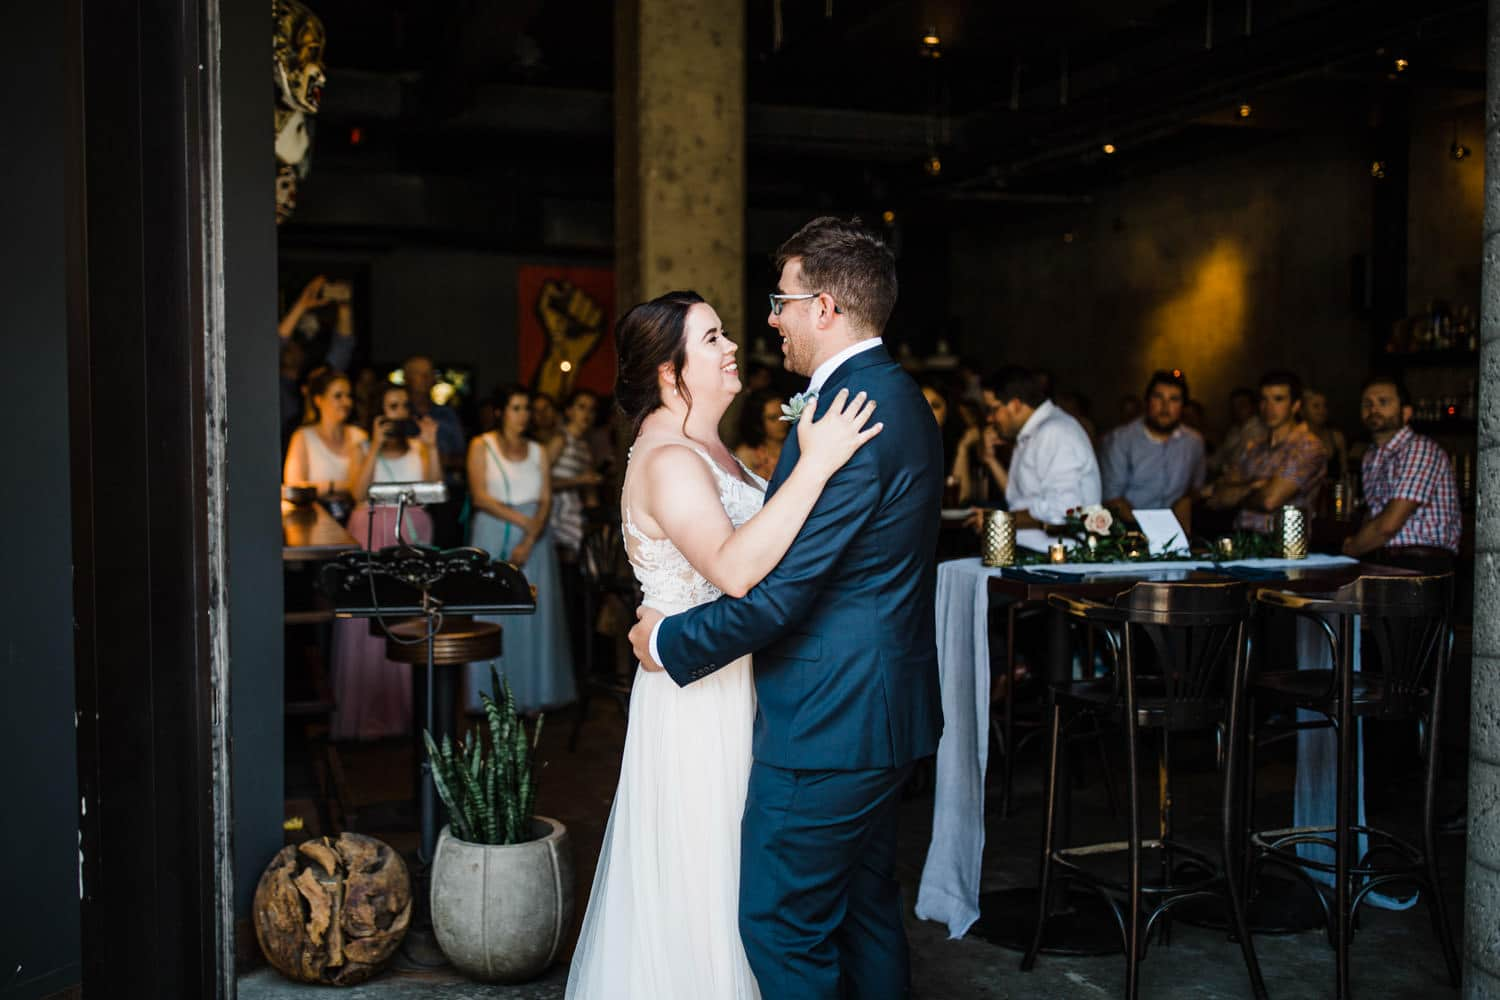 bride and groom's first dance at el camino - downtown ottawa wedding - carley teresa photography